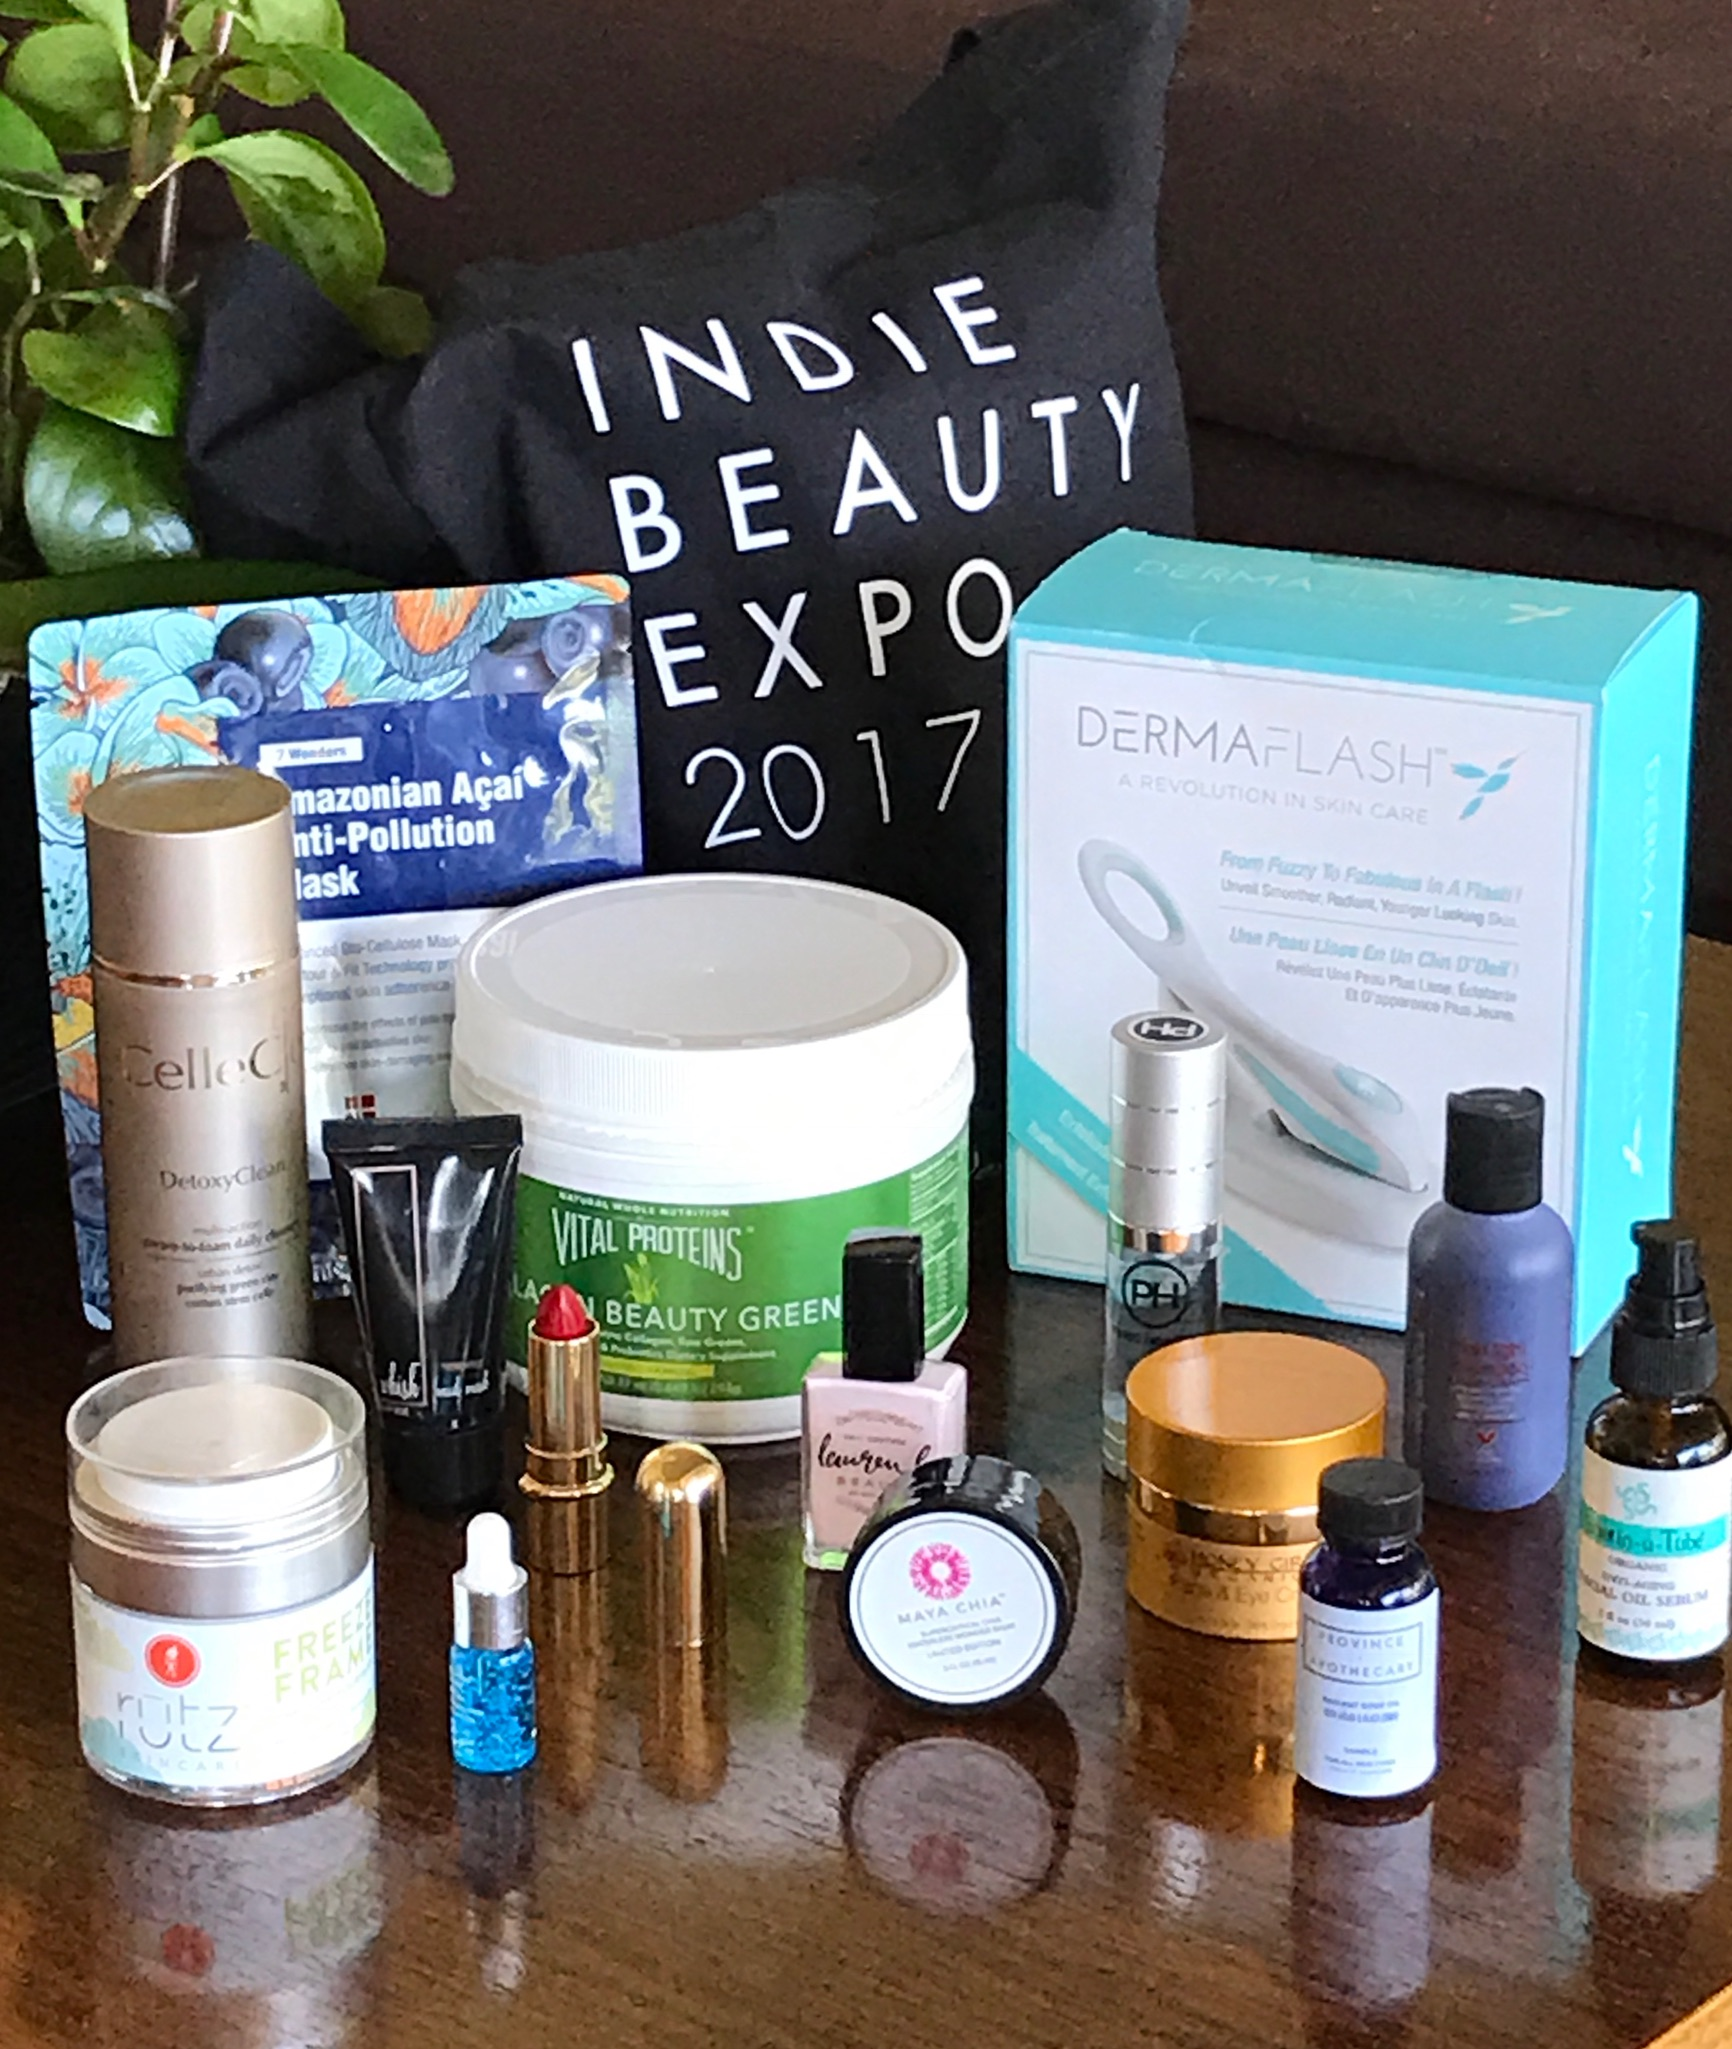 melissa meyers + indie beauty expo